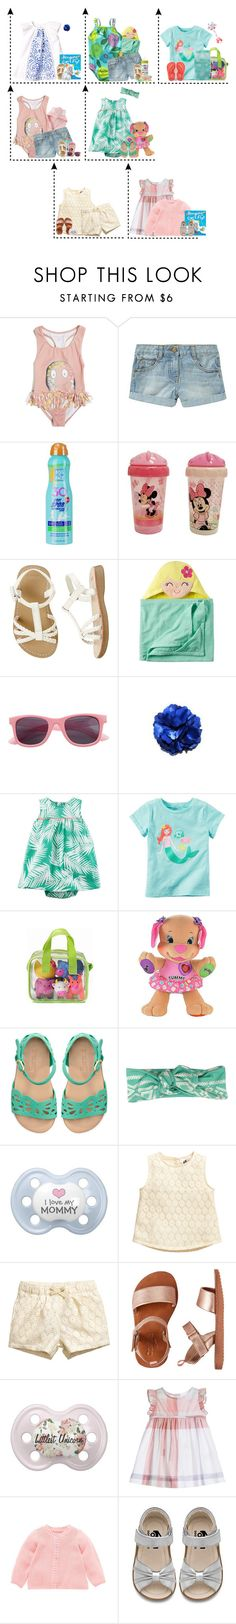 """Charlie"" by lovetini6412 ❤ liked on Polyvore featuring Kiss My Face, Disney, Gymboree, Carter's, Gap, Alex Toys, The Honest Company, Old Navy, Zara and H&M"